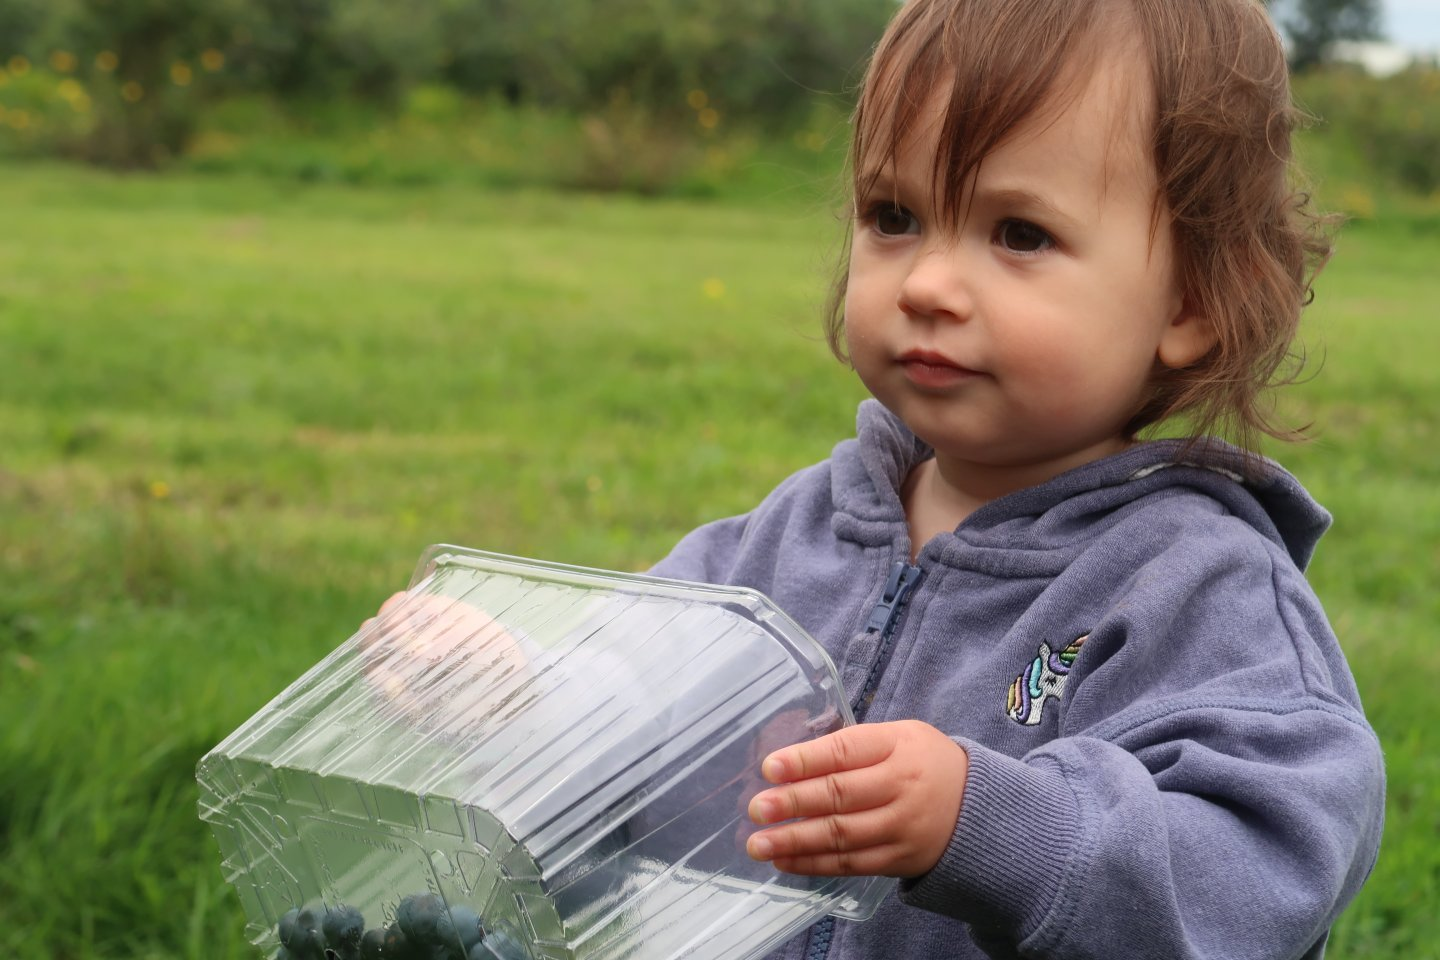 B, our one year old daughter, holding a punnet with a few blueberries in the bottom.